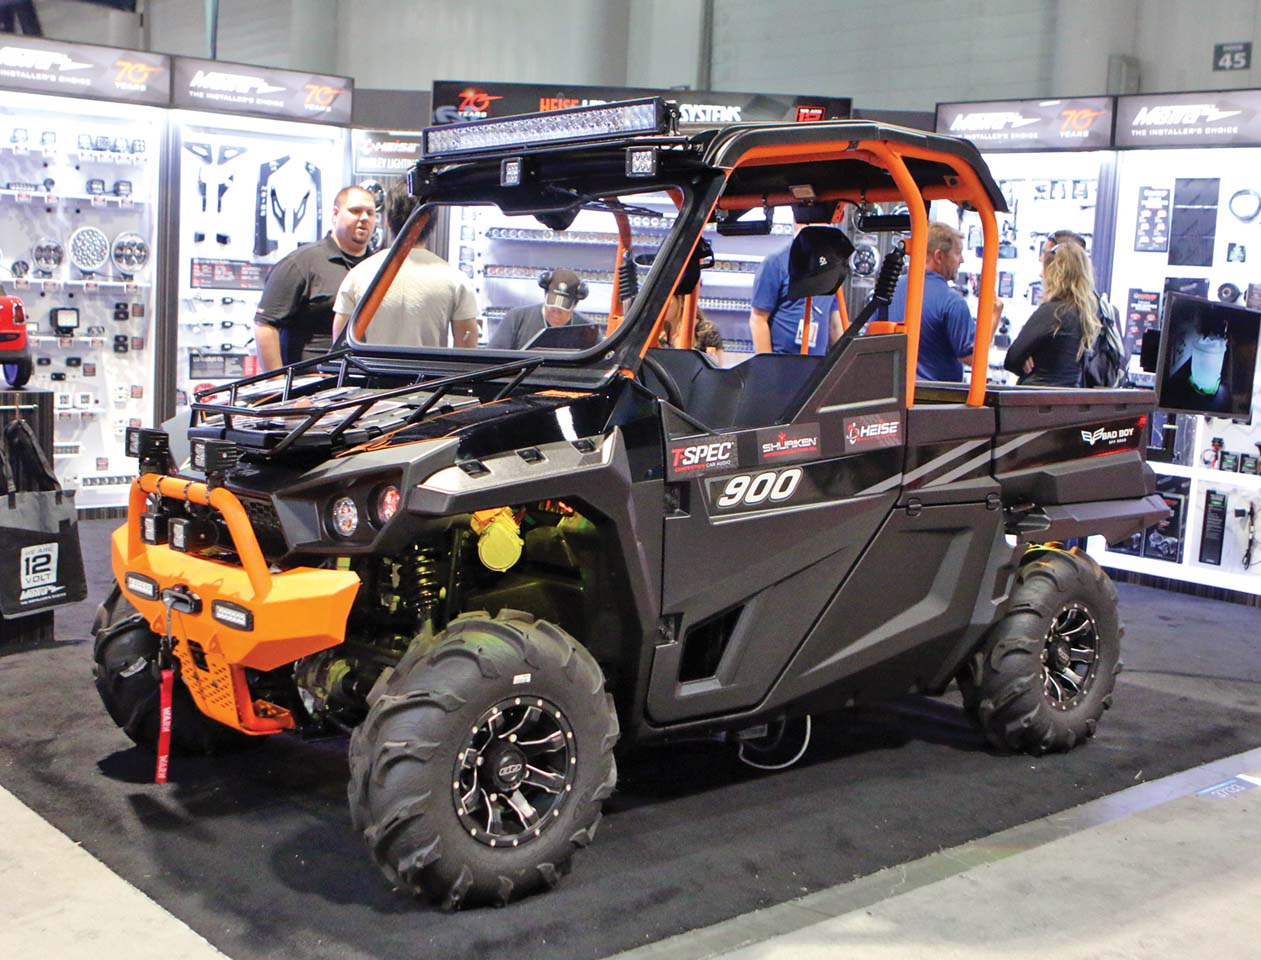 Polaris Side By Side Atv >> SEMA Show Closeup - Show & Shine | ATV Illustrated